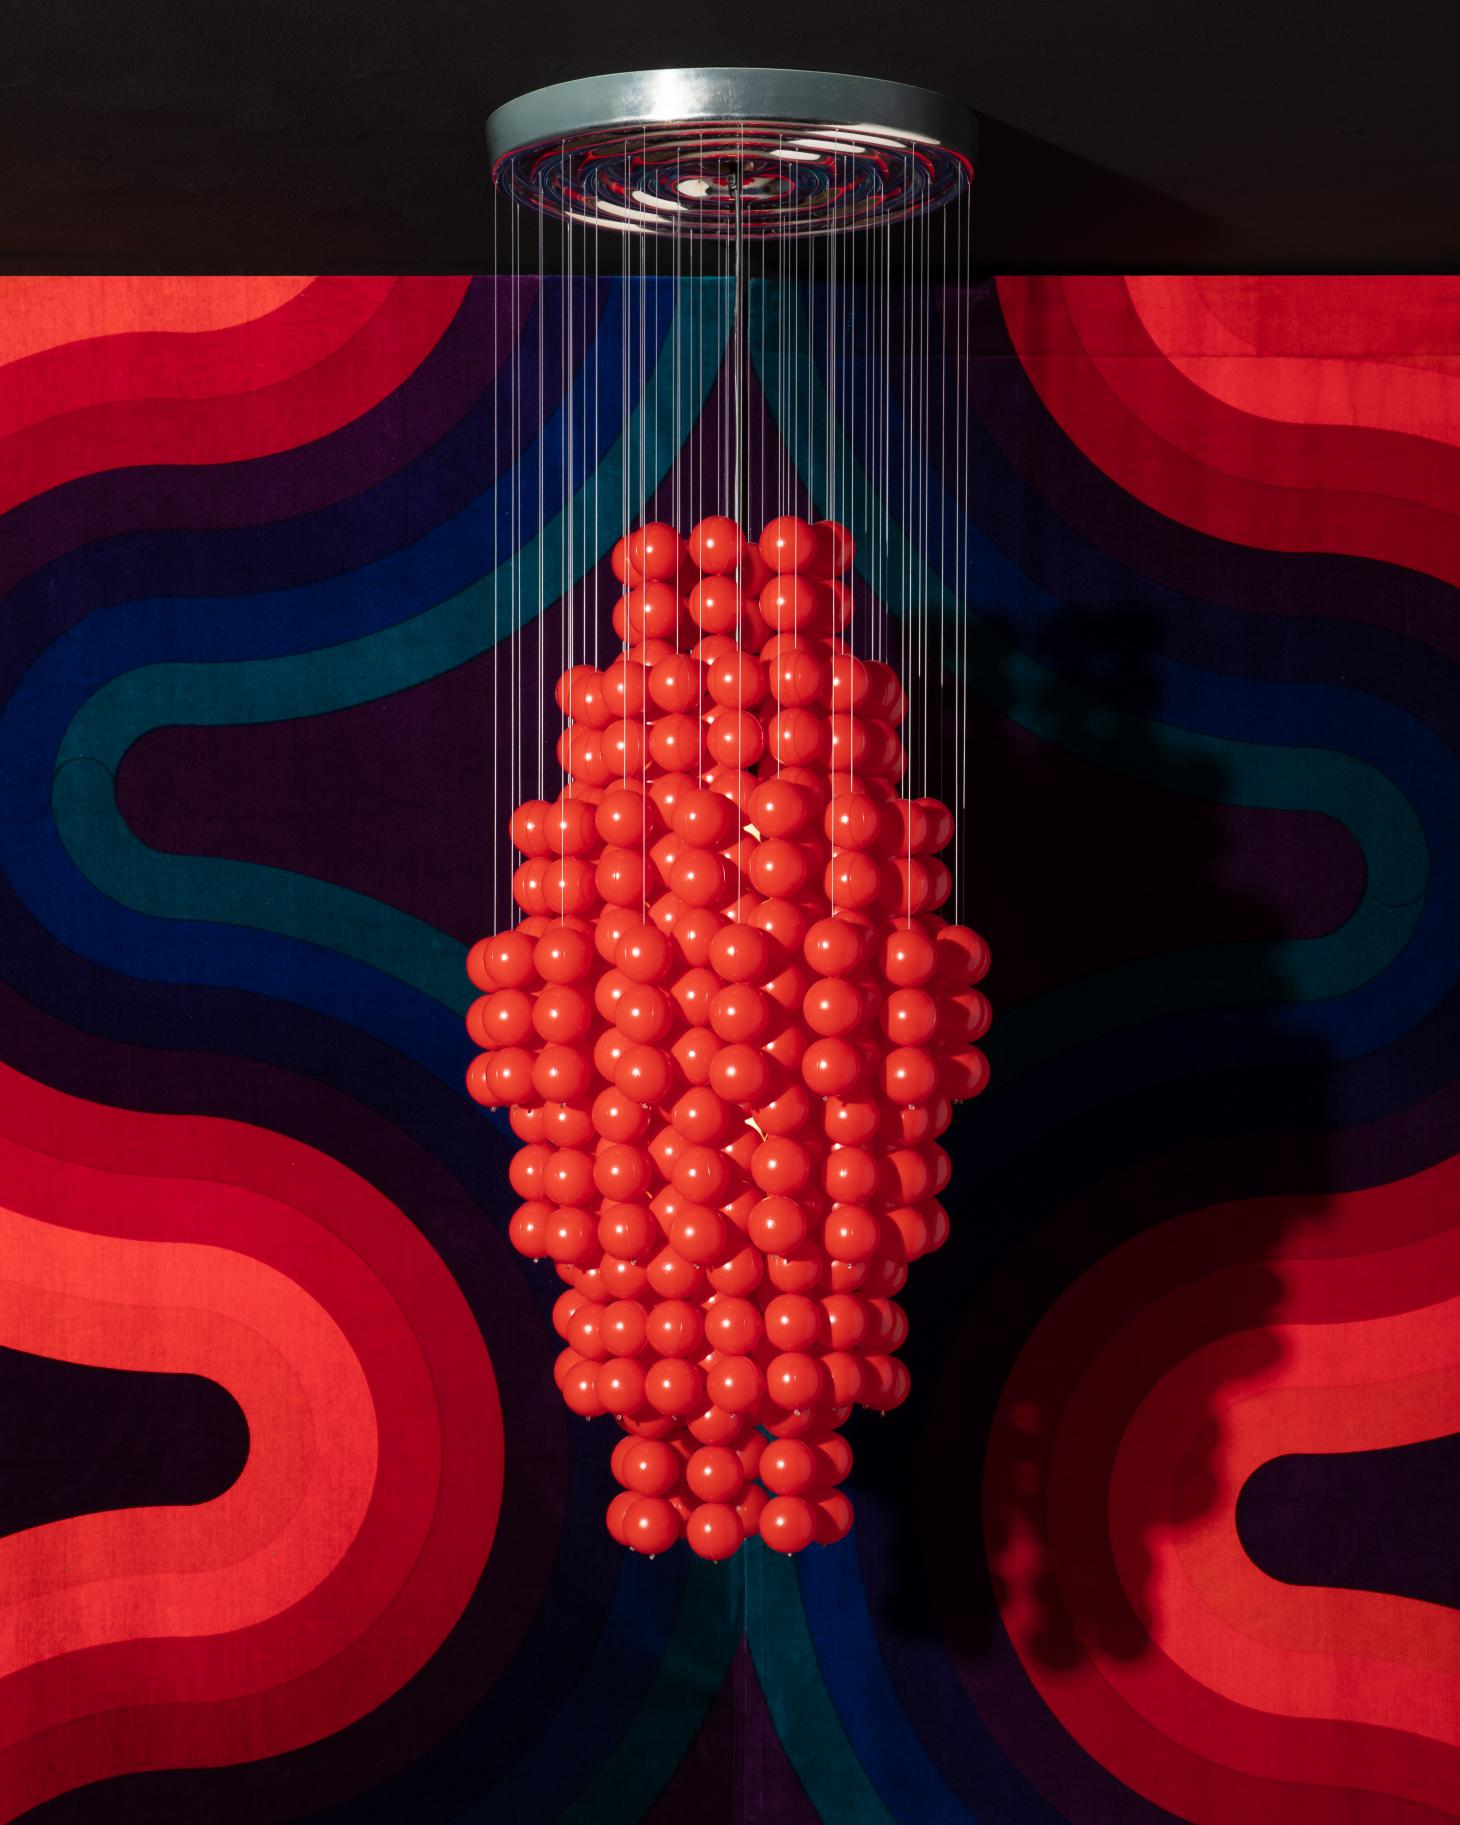 Ball Lamp type G by Verner Panton, consisting of a multitude of red plastic balls